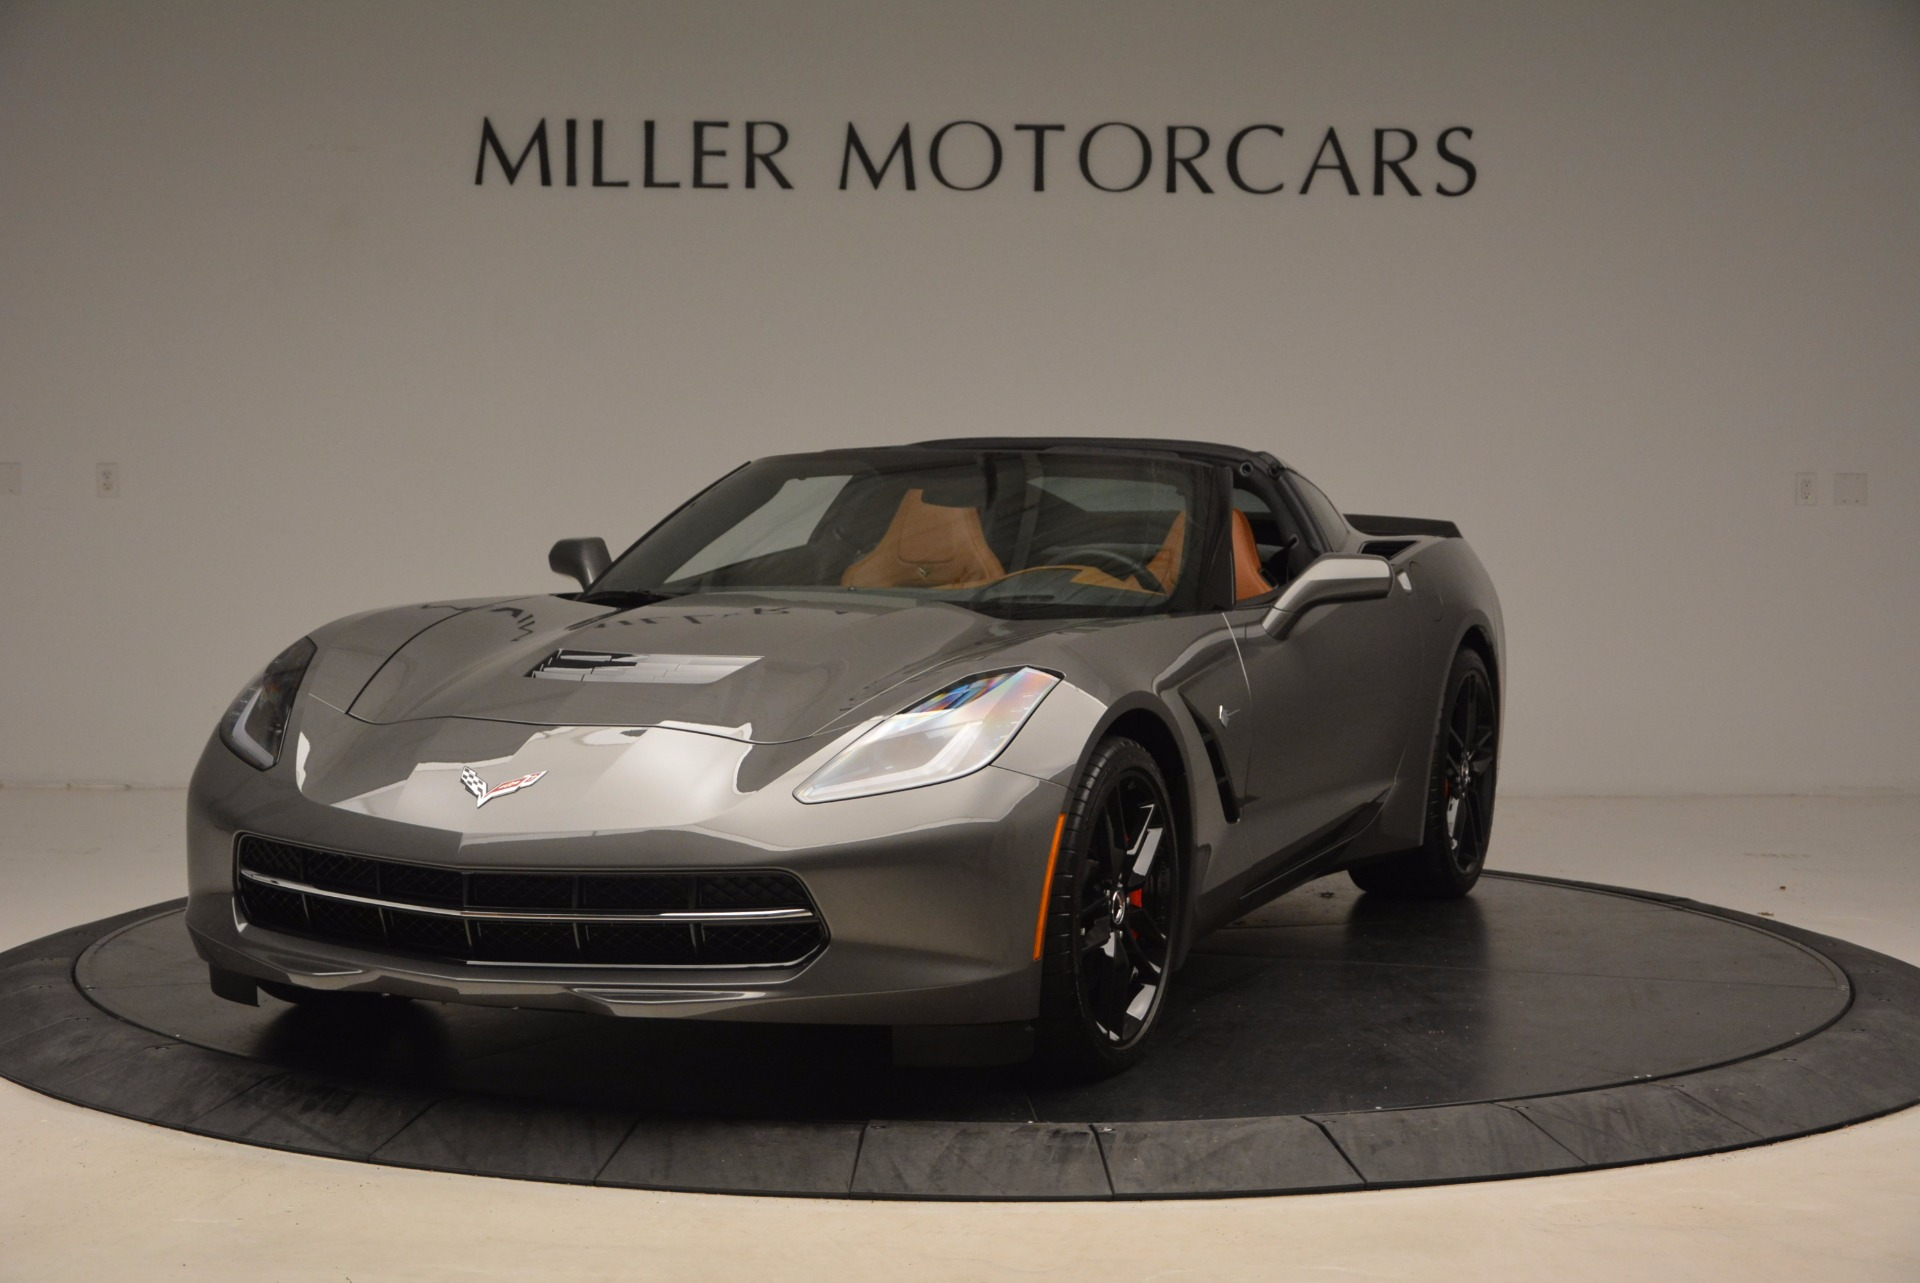 Used 2015 Chevrolet Corvette Stingray Z51 for sale Sold at Aston Martin of Greenwich in Greenwich CT 06830 1